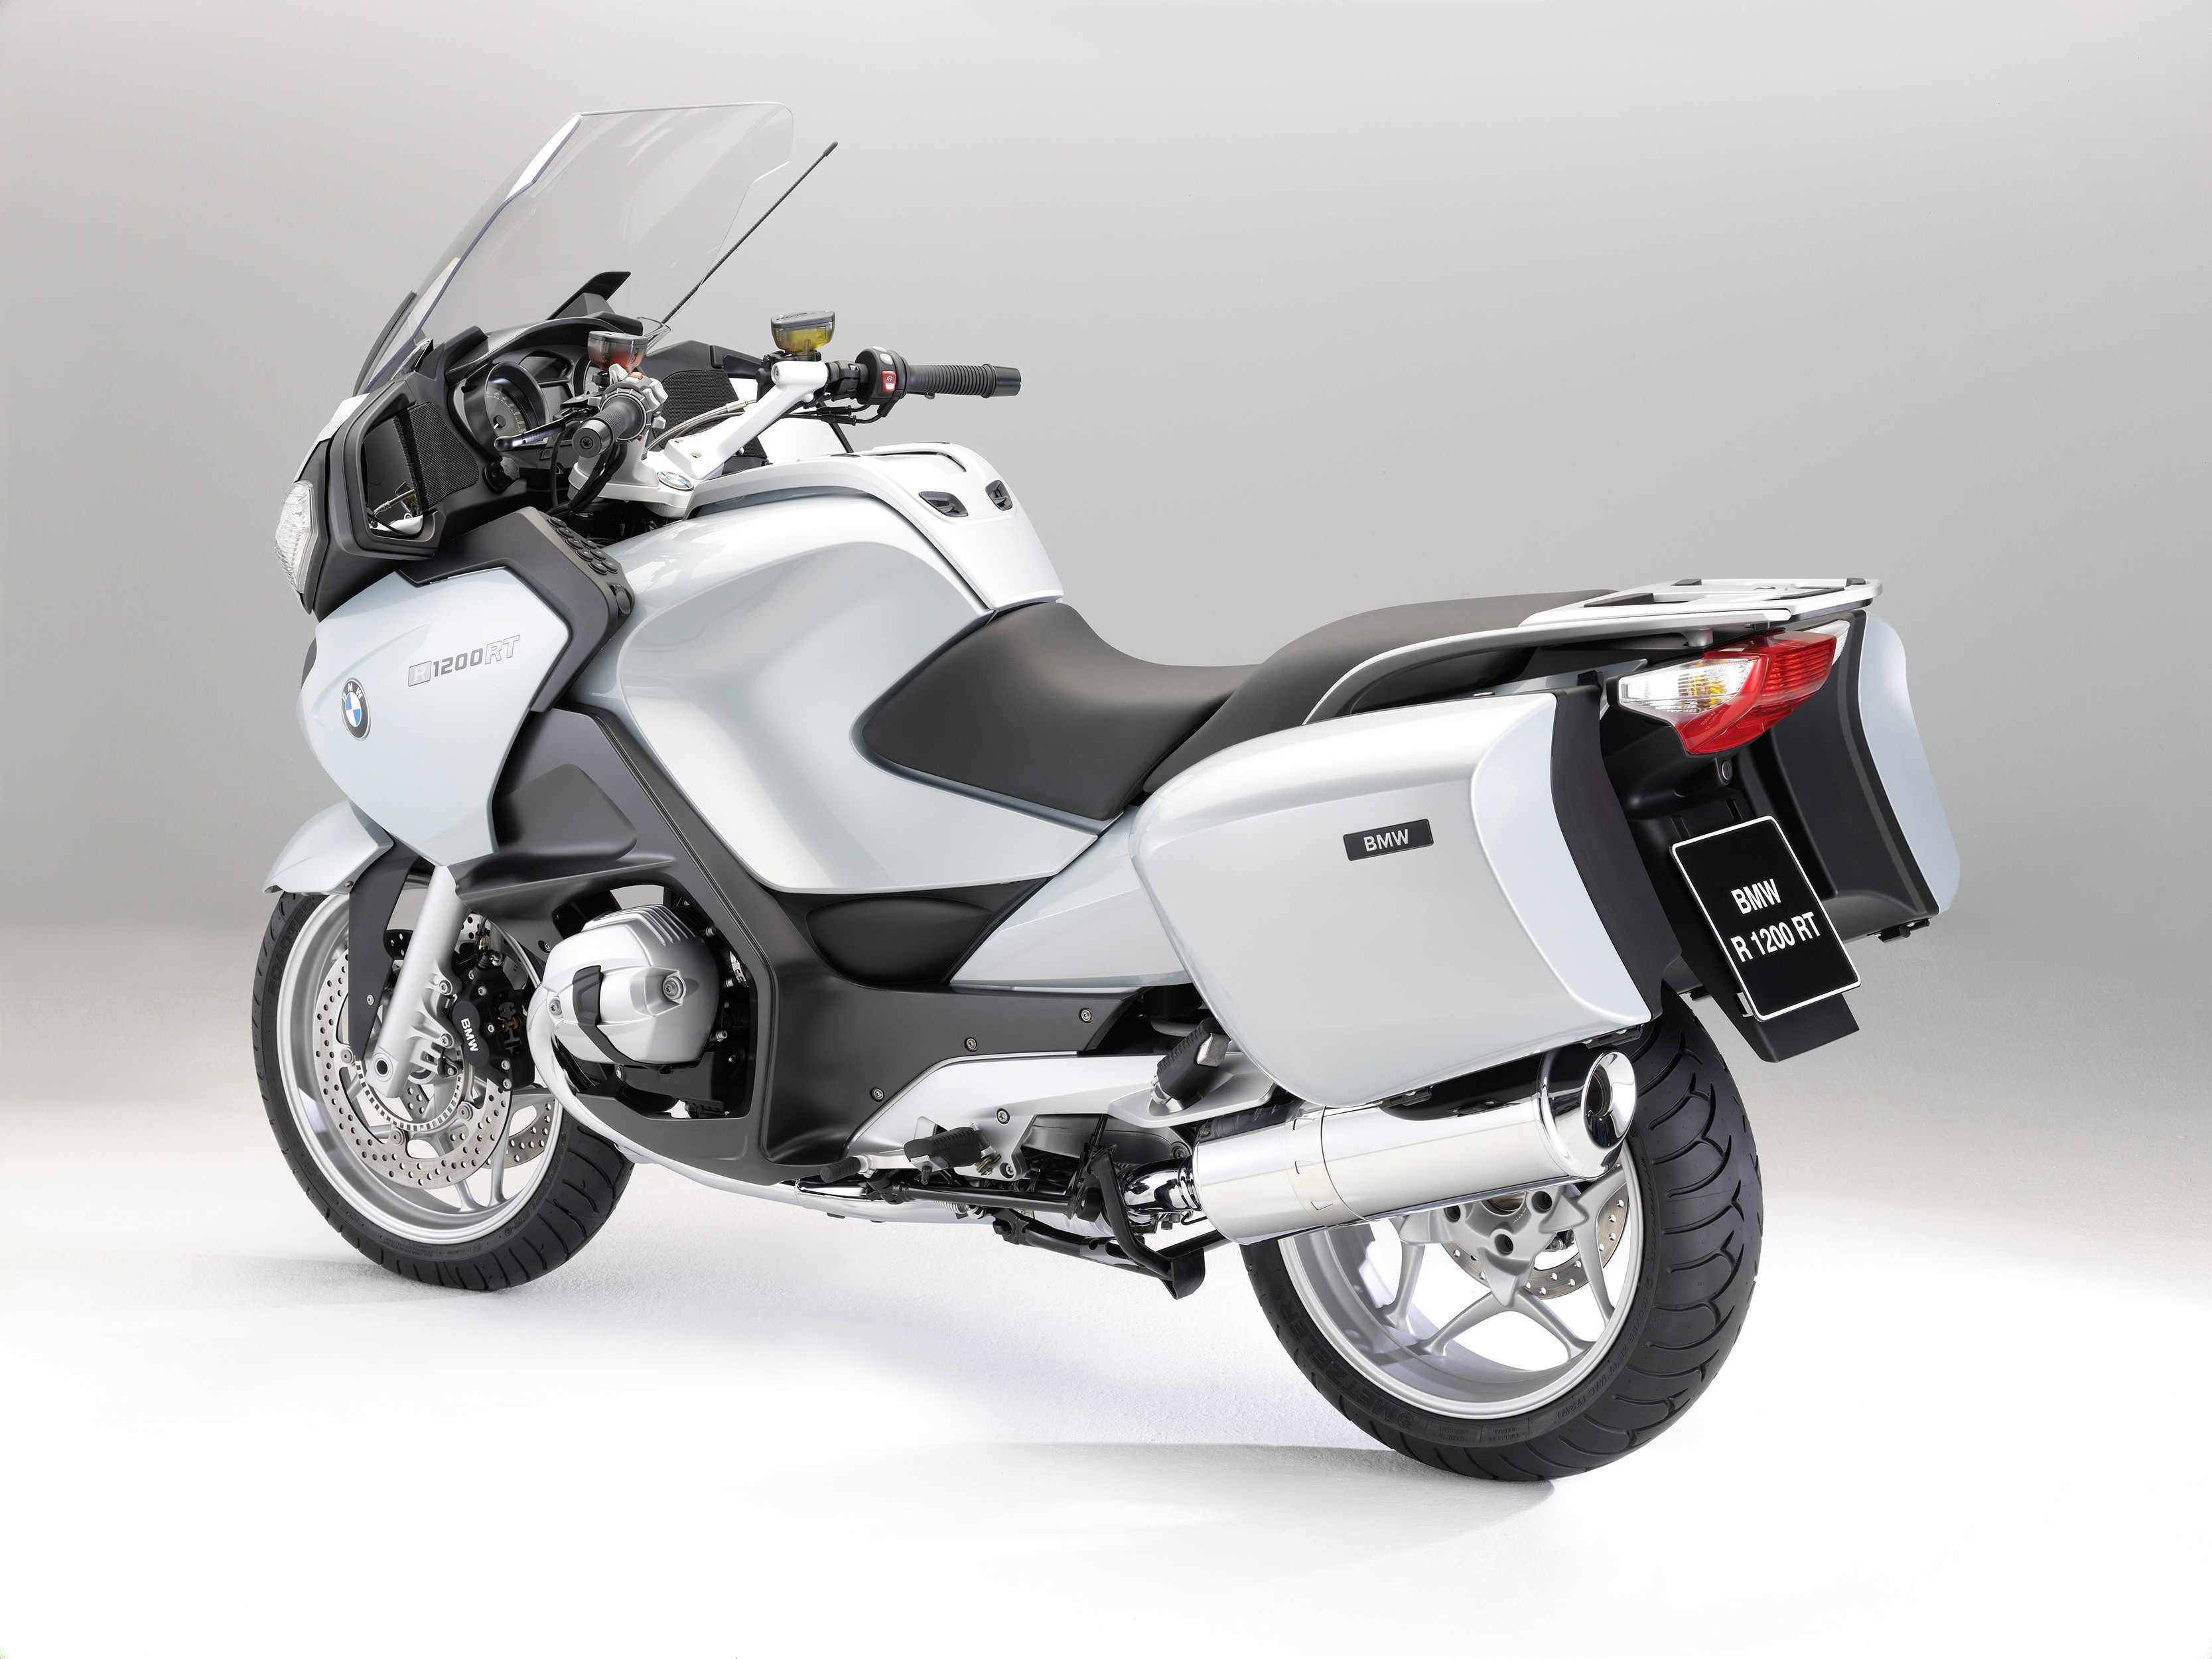 2010 bmw r 1200 rt gallery 331530 top speed. Black Bedroom Furniture Sets. Home Design Ideas